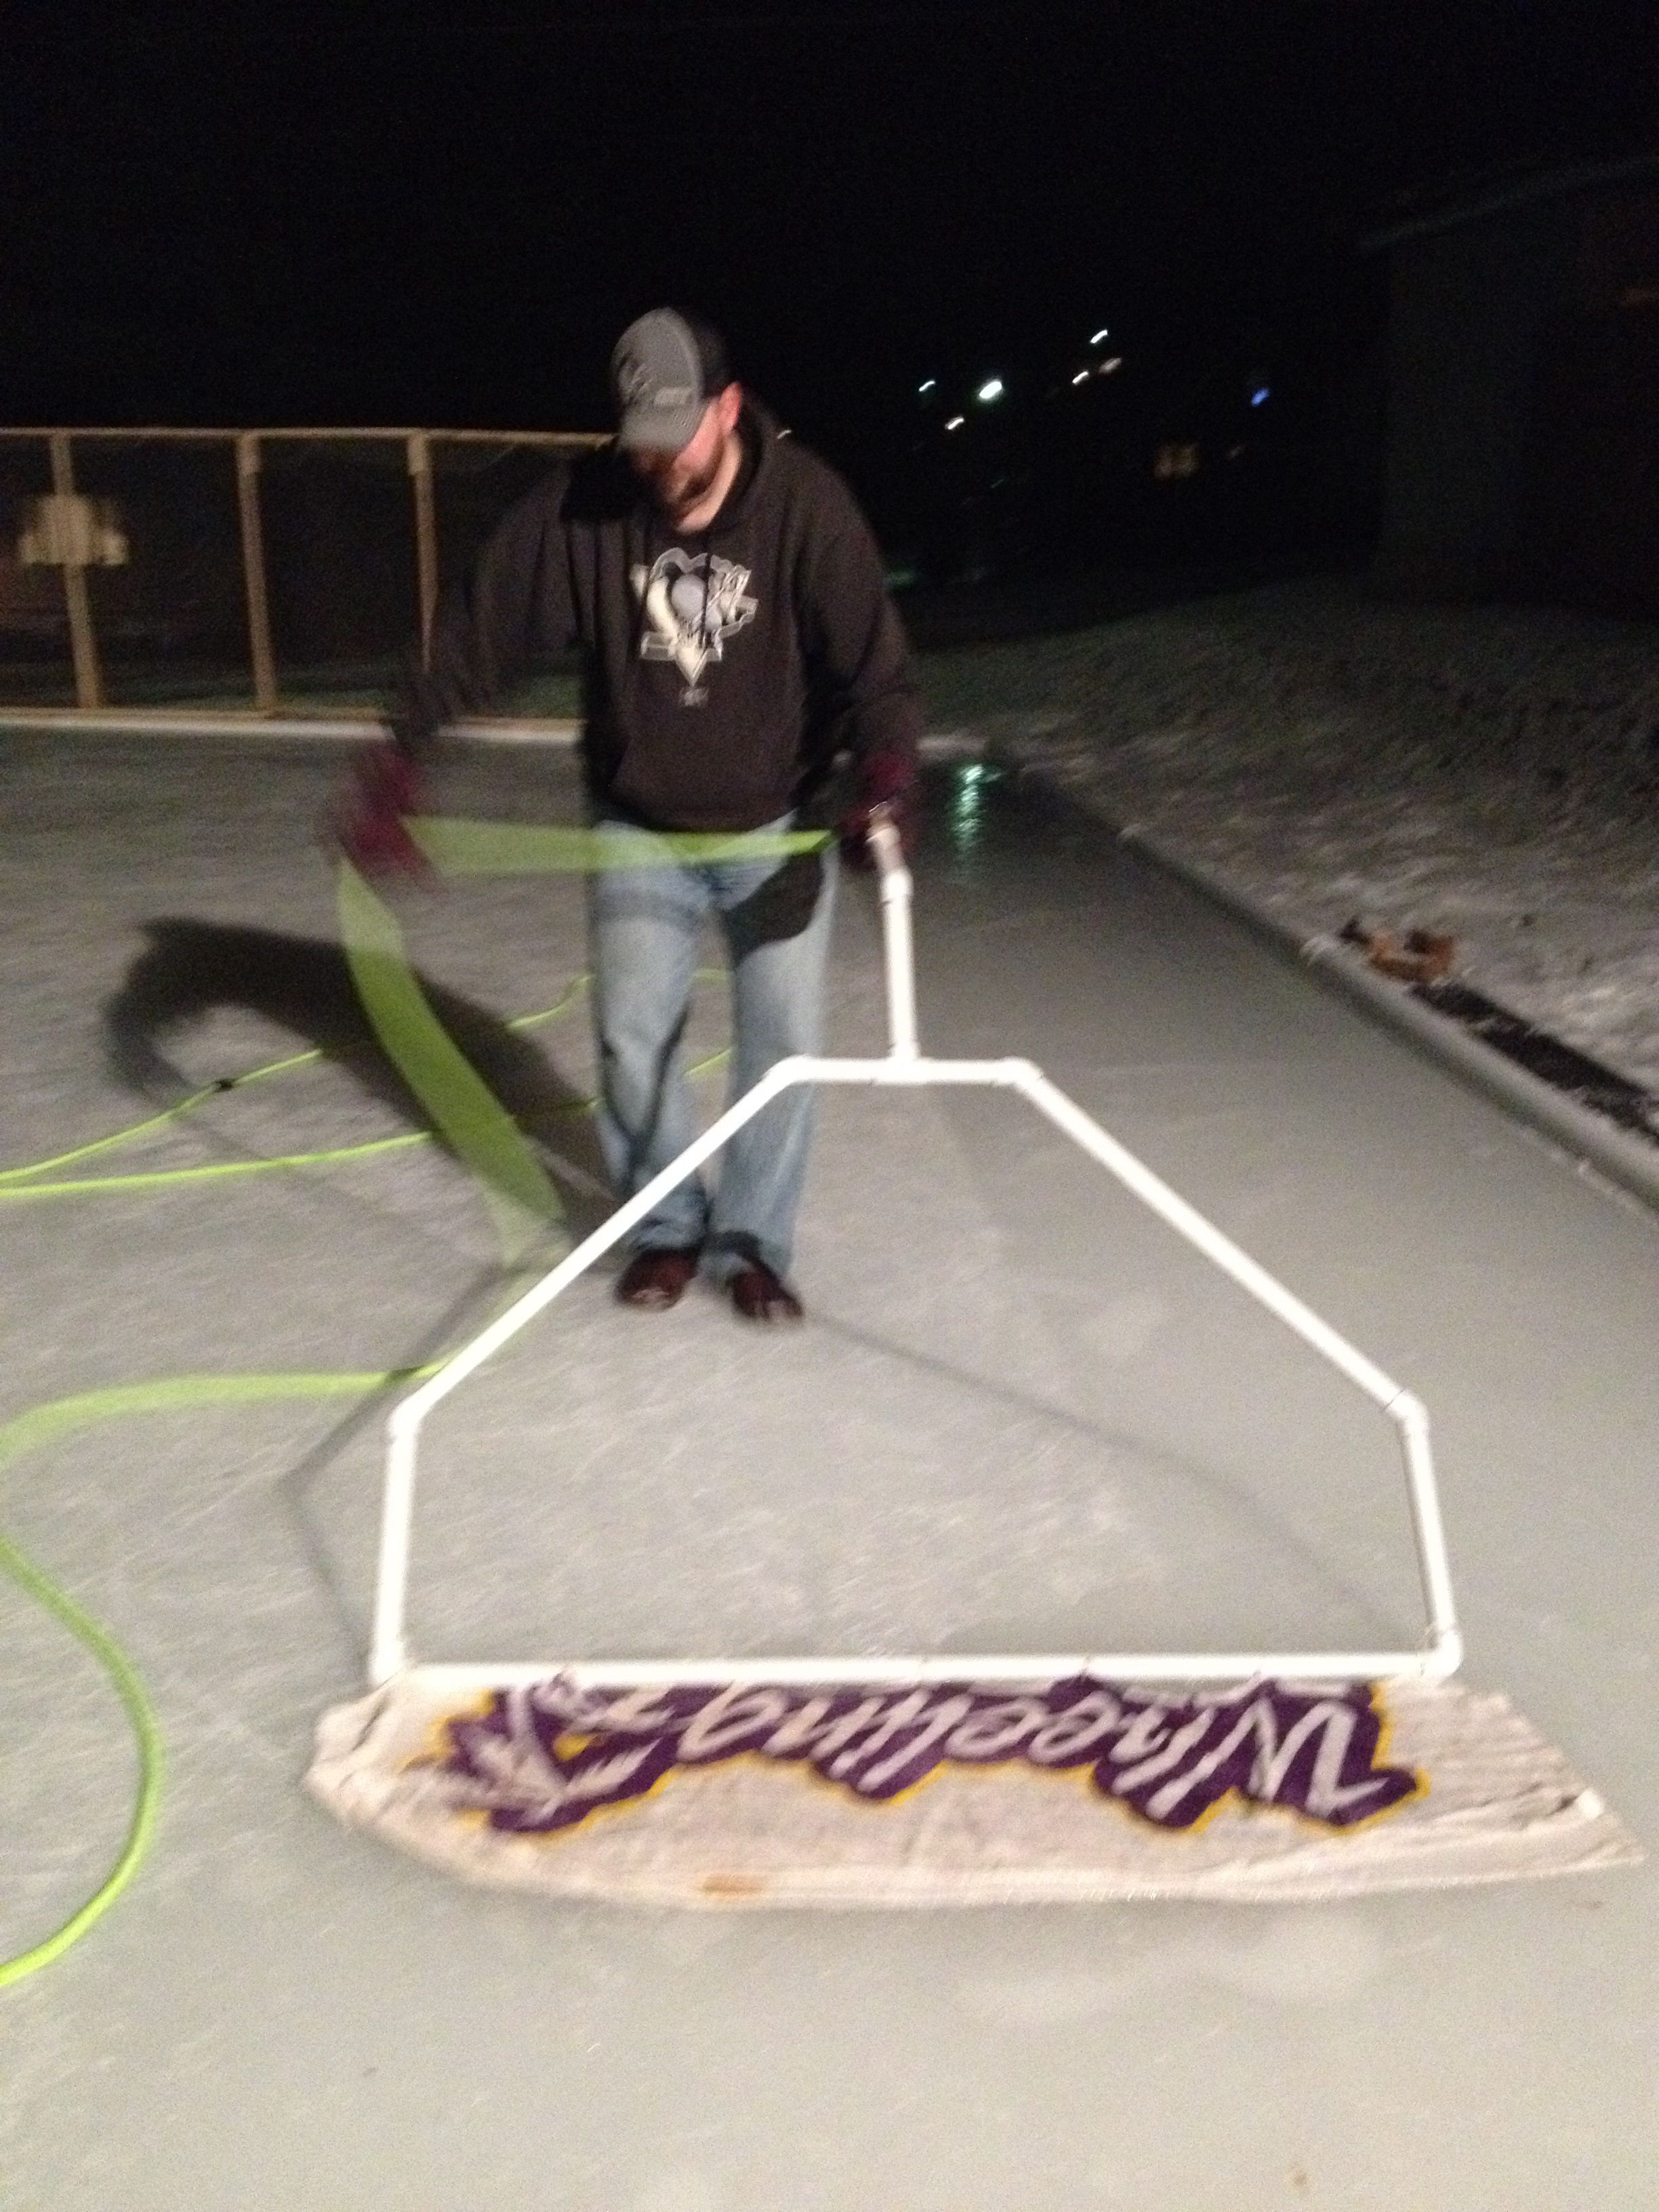 Pin By Carrie Nagy On Home Boni Zamboni For Our Backyard Ice Rink Backyard Ice Rink Ice Rink Backyard Rink Diy backyard rink zamboni